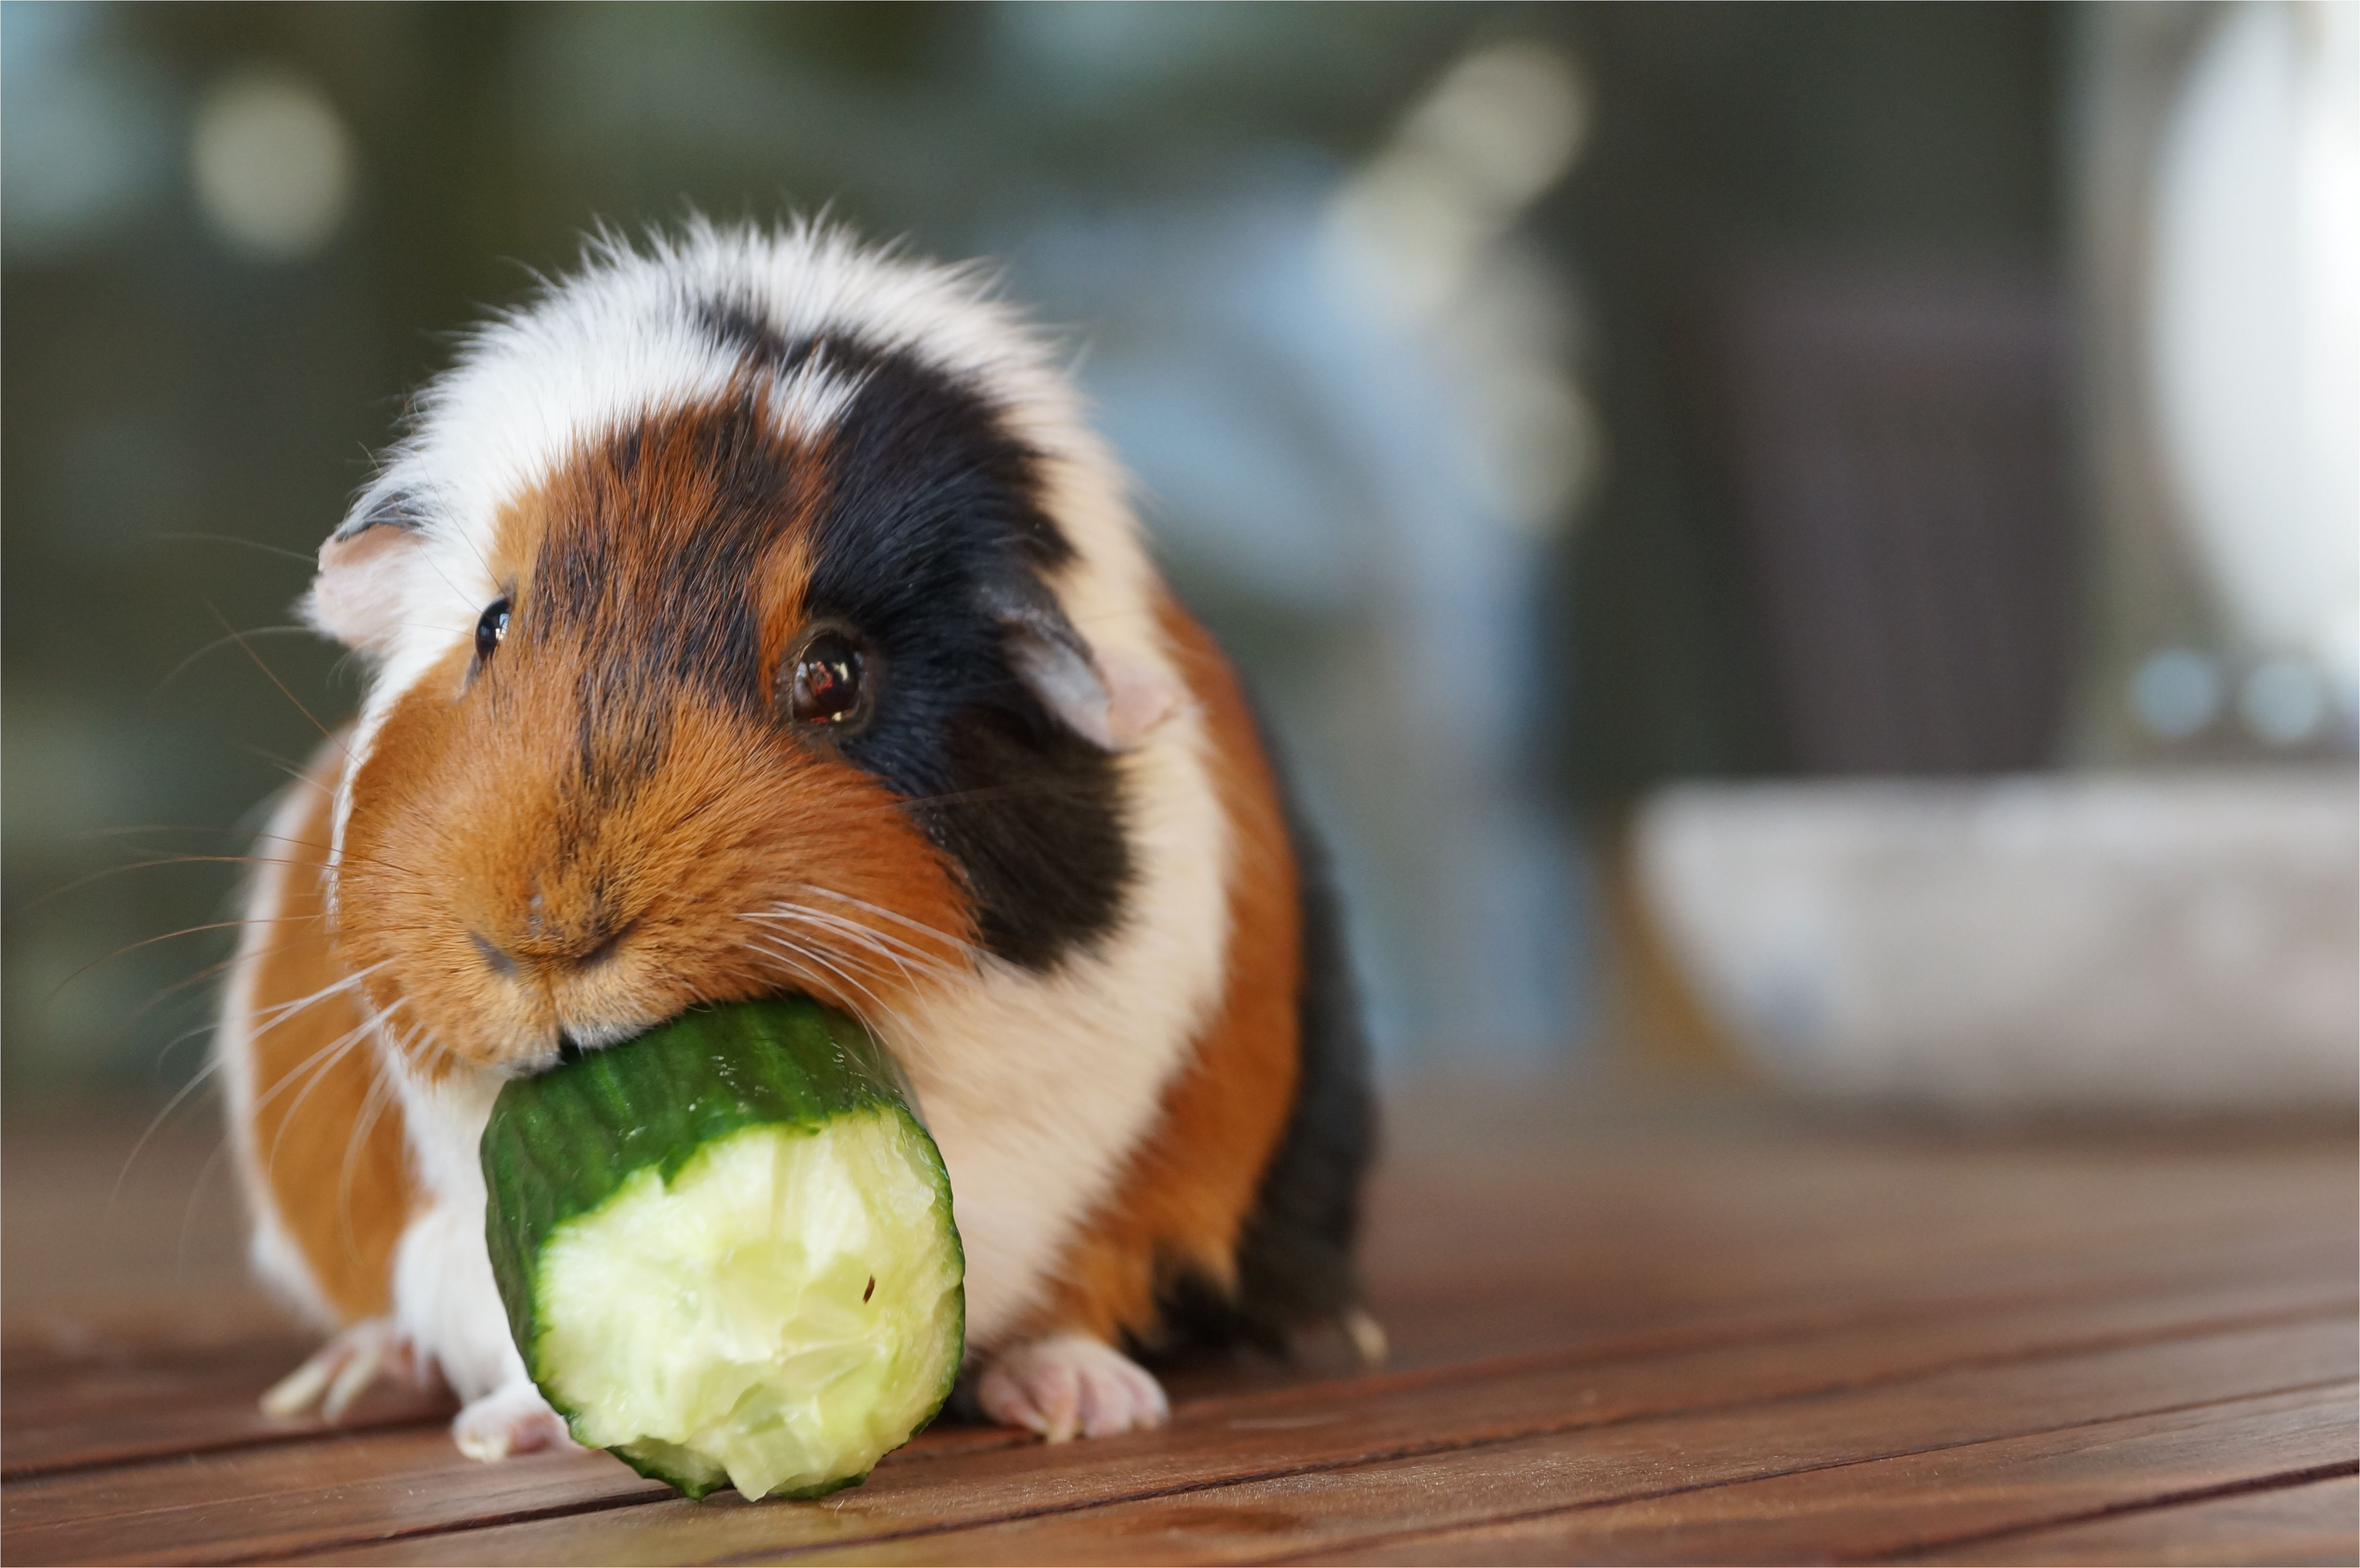 close up of guinea pig eating cucumber on floorboard 675608313 59fb3a8489eacc00377dfc8f jpg